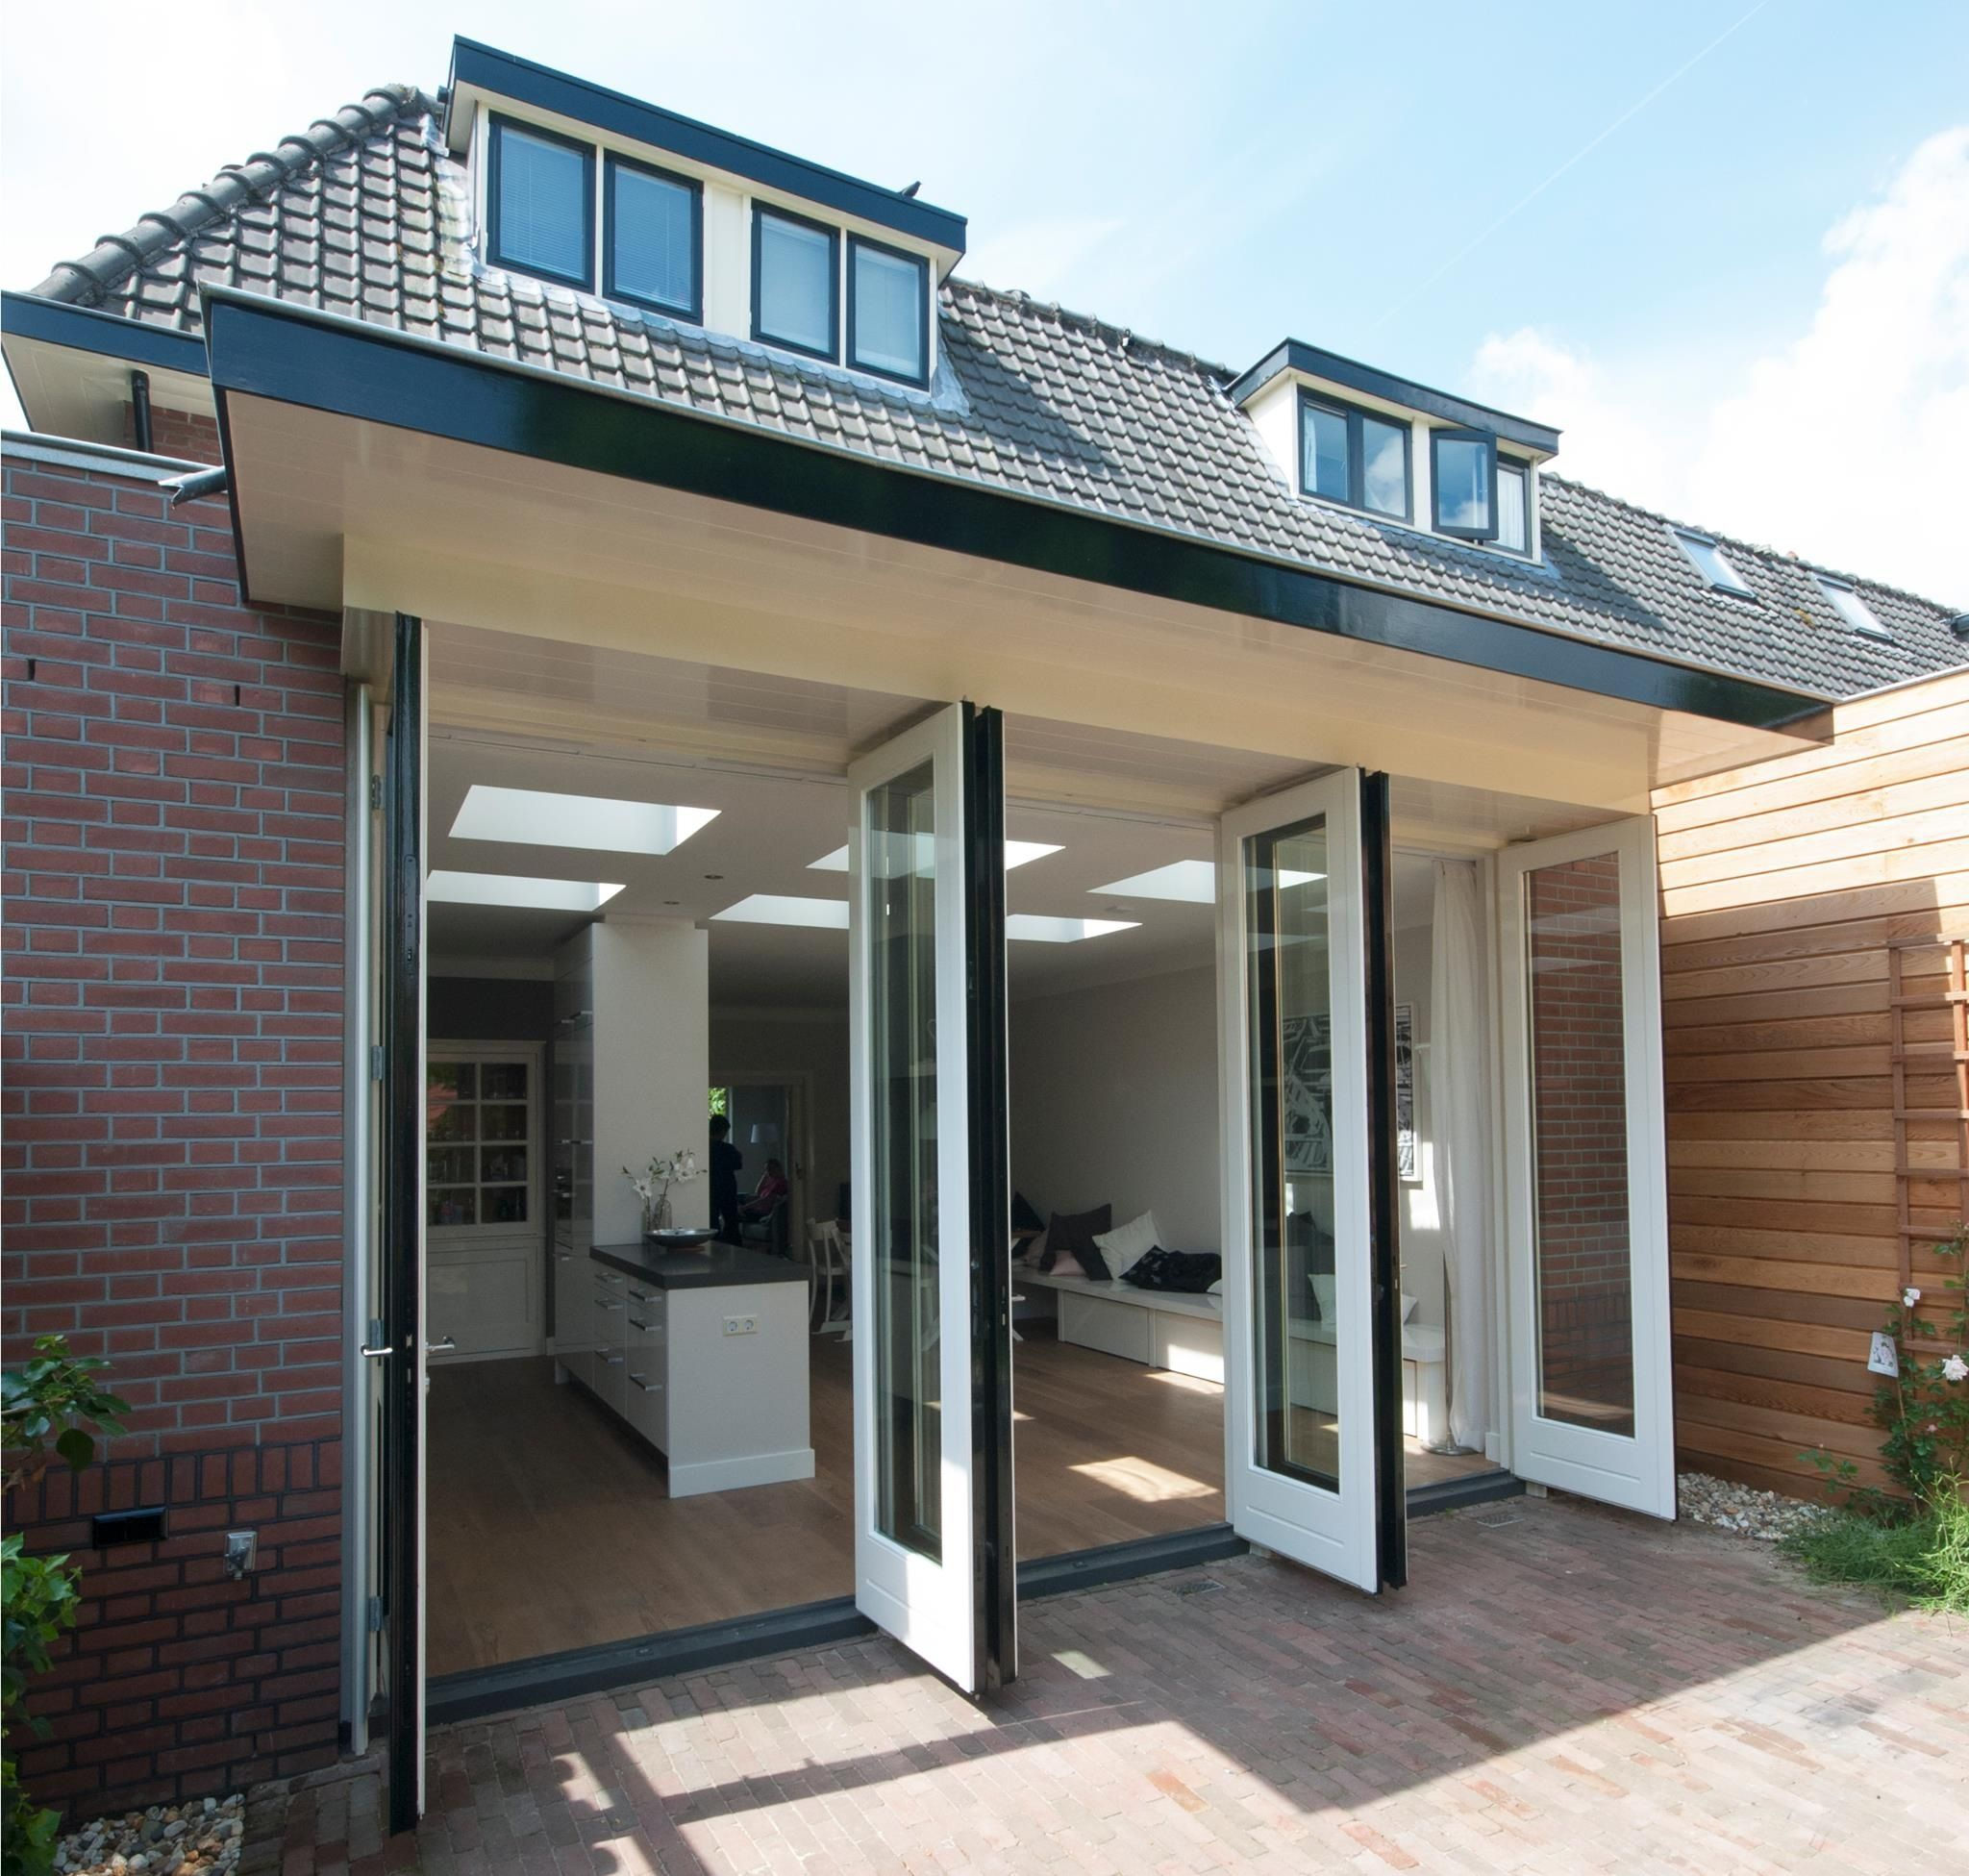 Uitbouw Project In Zeist Rob Ten Napel Architect Stacker Doorsextension